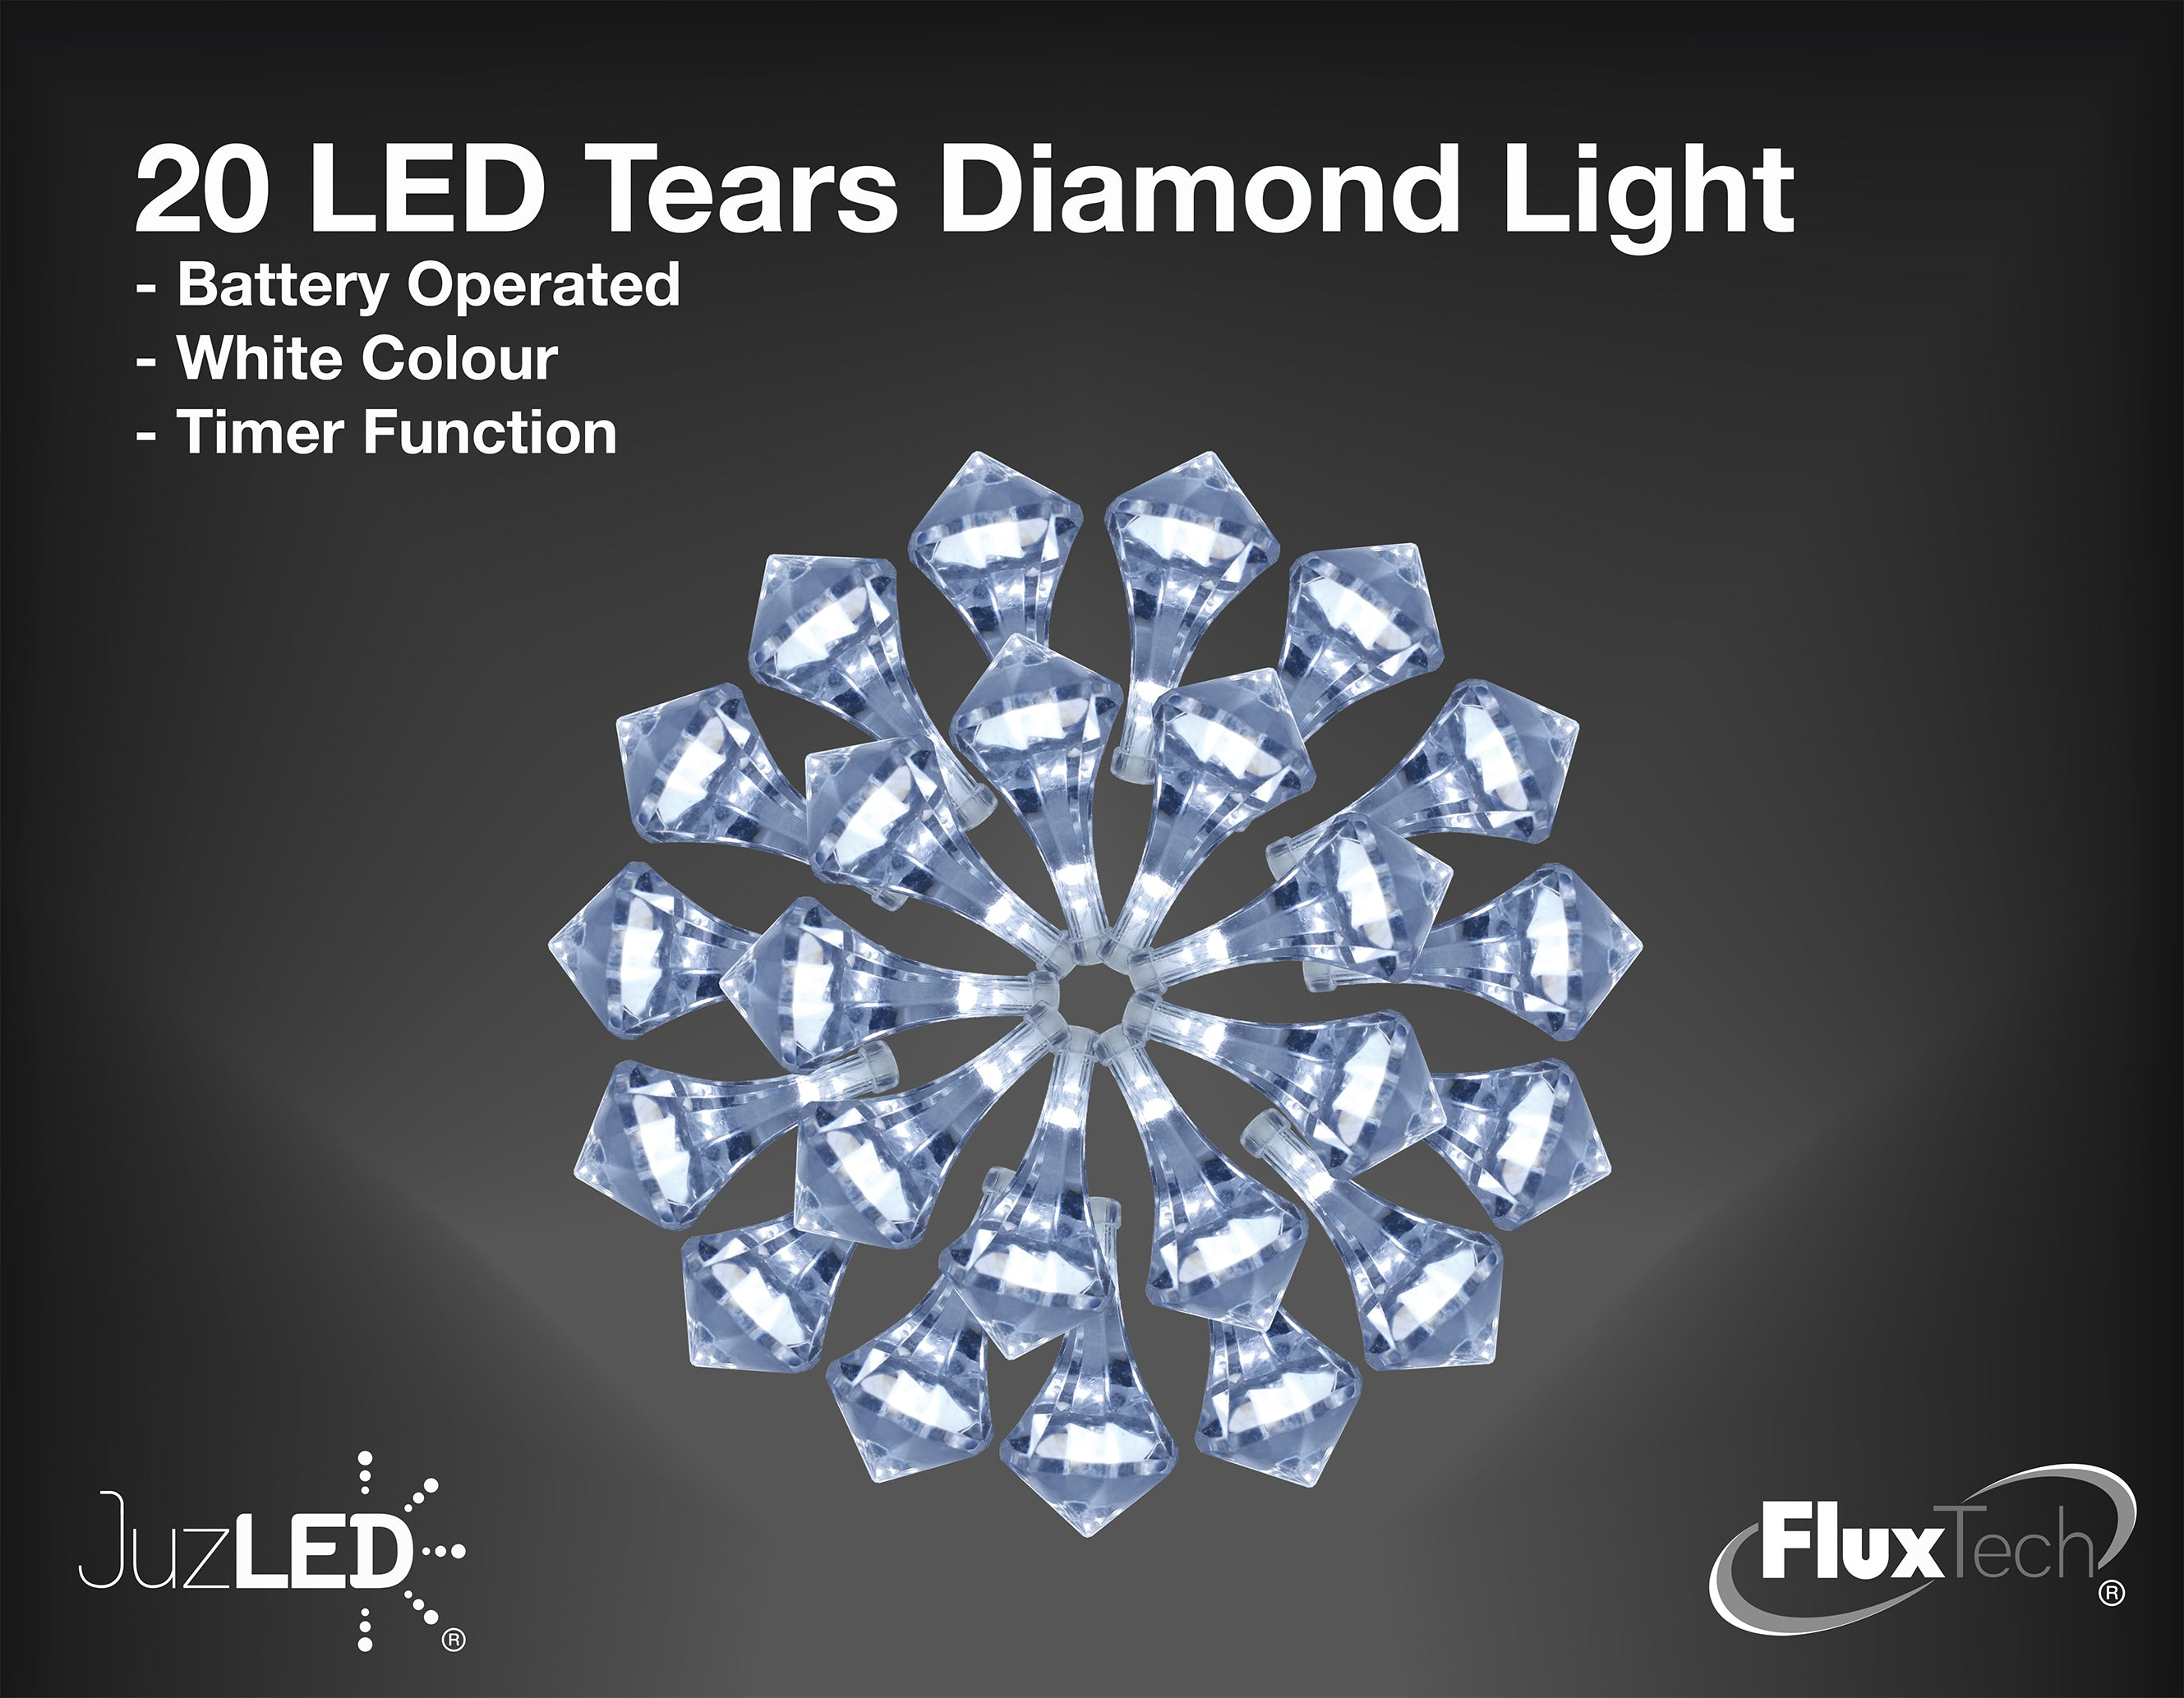 FluxTech - Tears Diamond x 20 Cool White LED Lights by JustLED – Timer function - Battery Operated